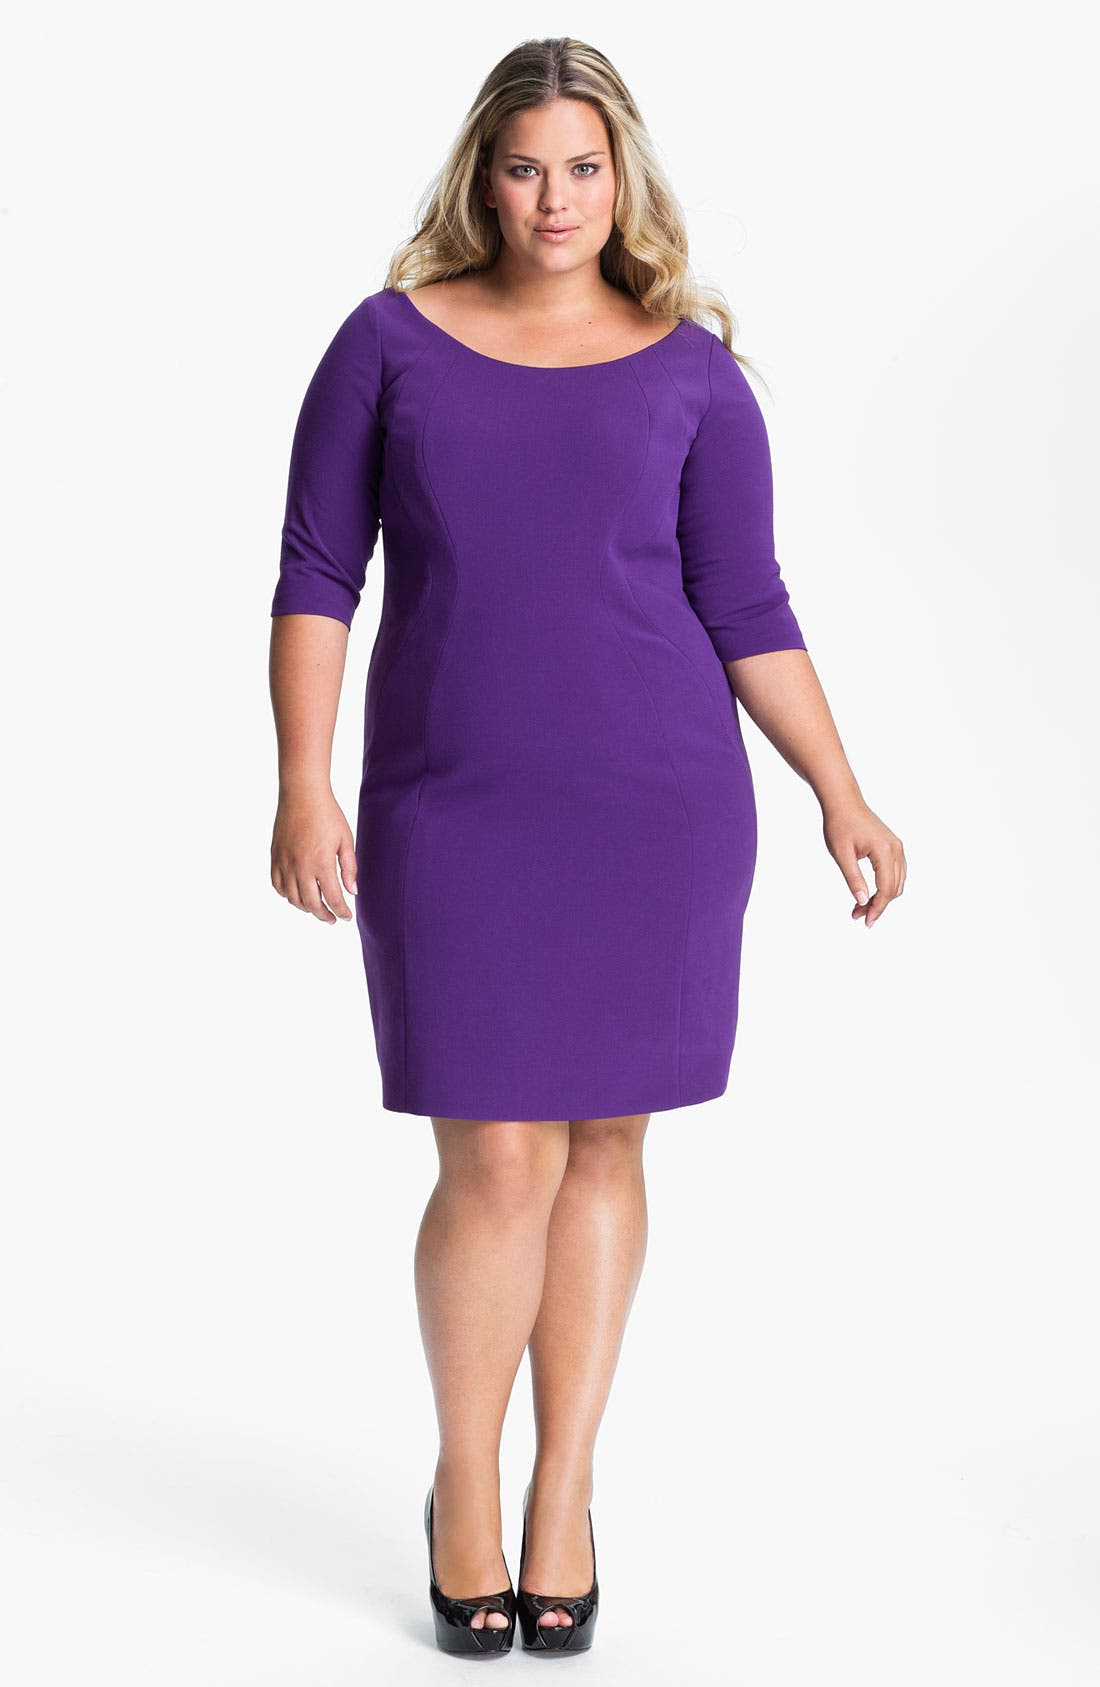 Alternate Image 1 Selected - Tahari Woman 'Pepita' Dress (Plus)